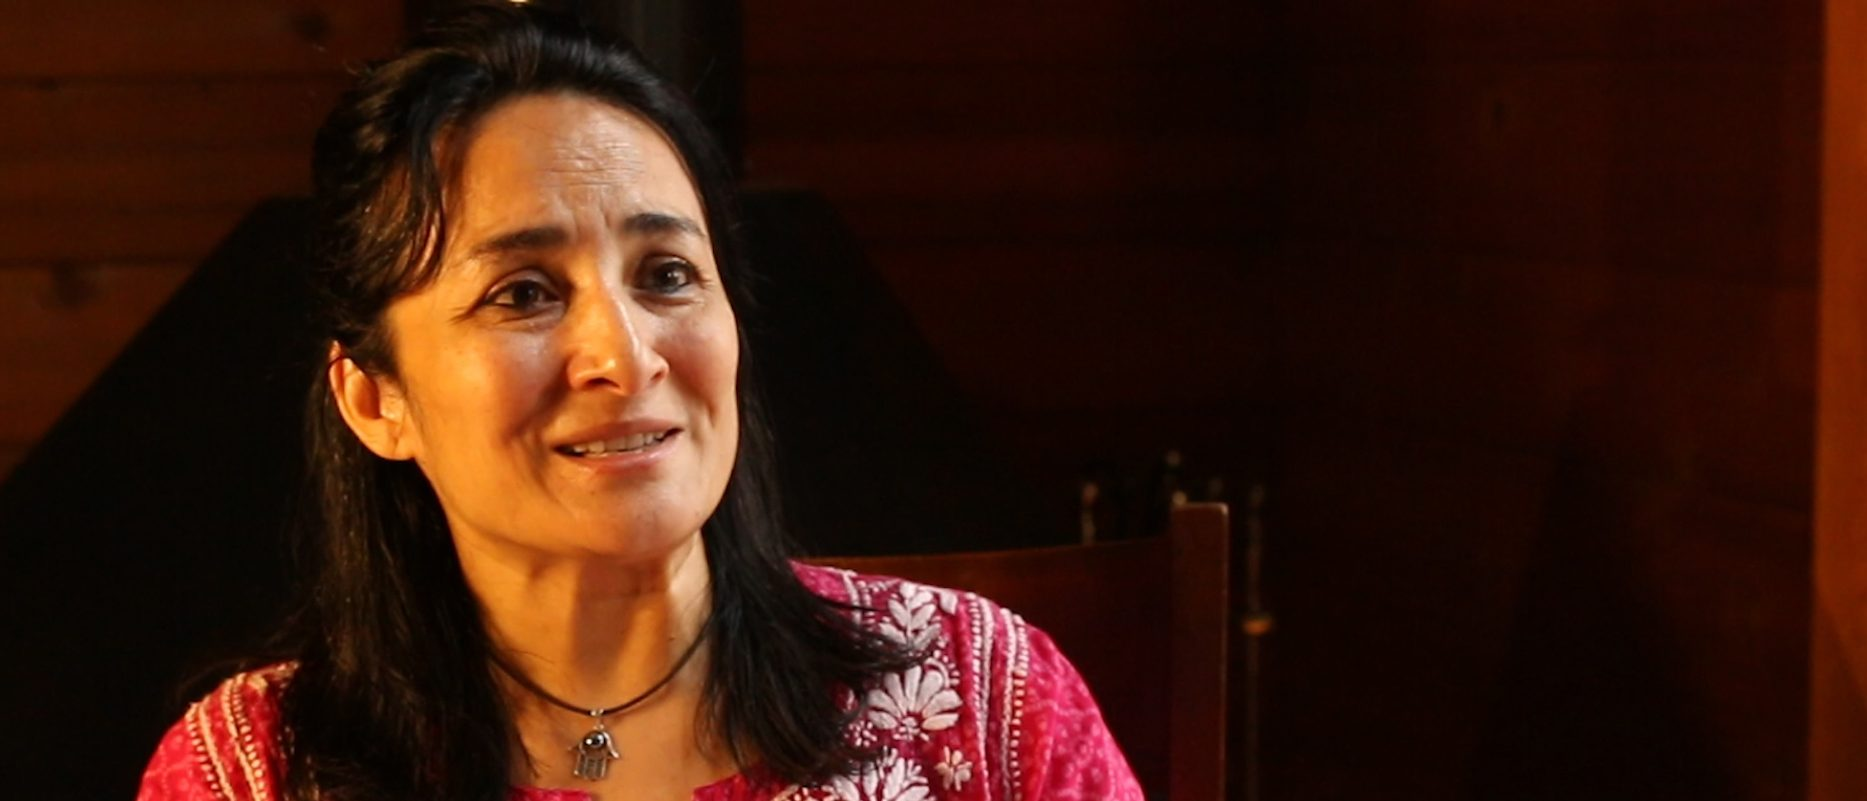 Asra Nomani, raised in West Virginia, has been a respected journalist, an author and has dedicated her last 15 years to reforming her Muslim religion. Sean Moody/TheDCNF)